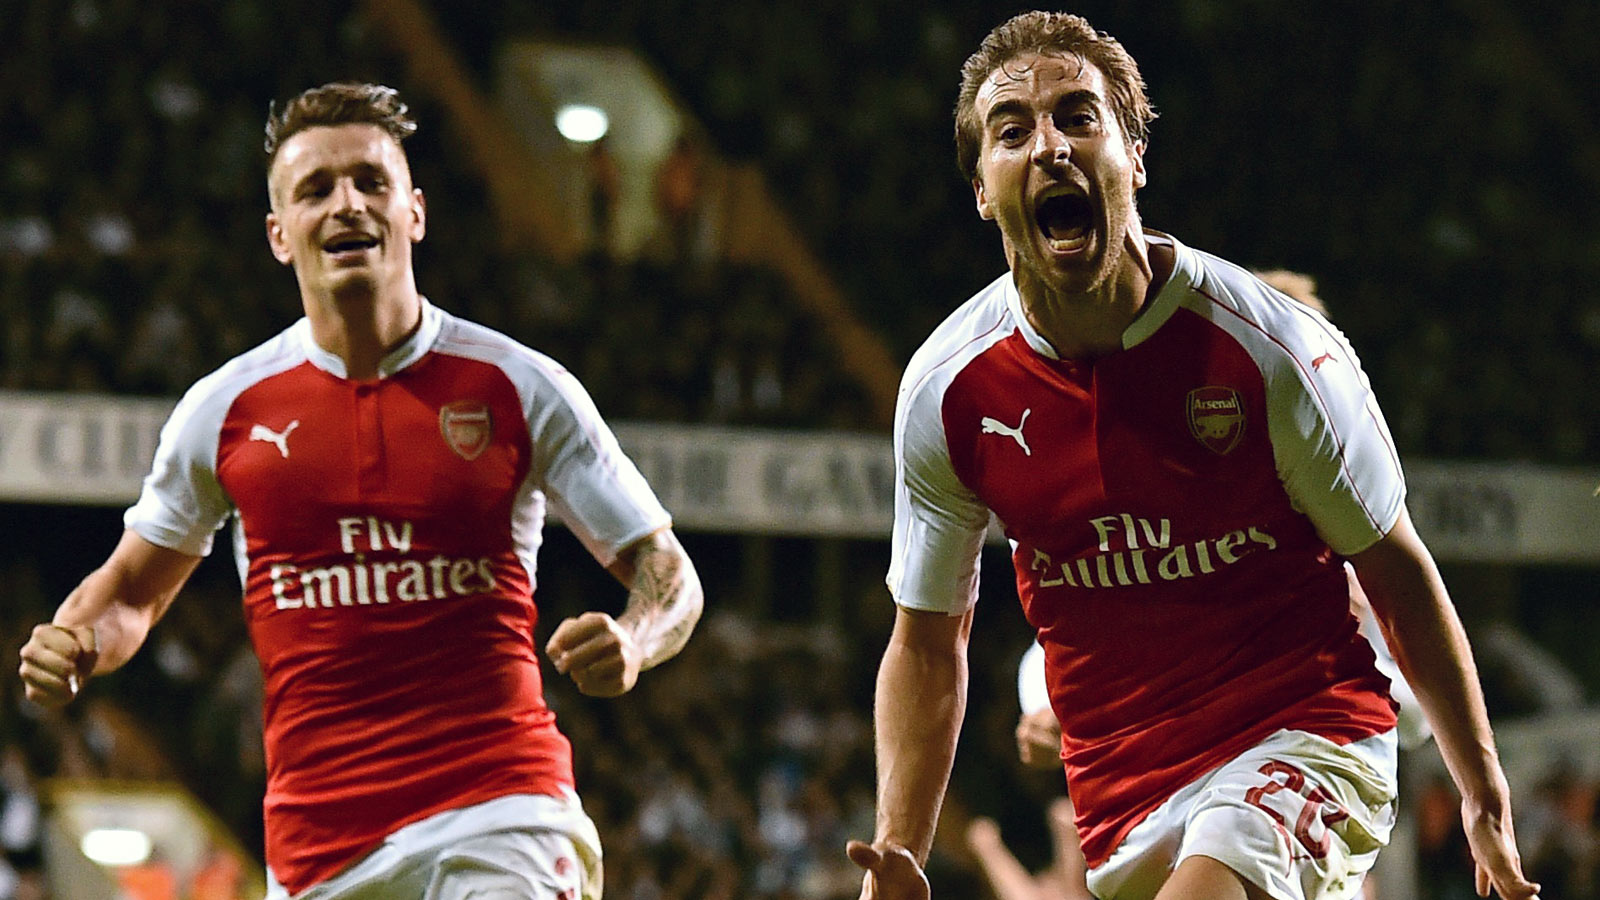 Arsenal sink Tottenham, advance to League Cup's fourth round